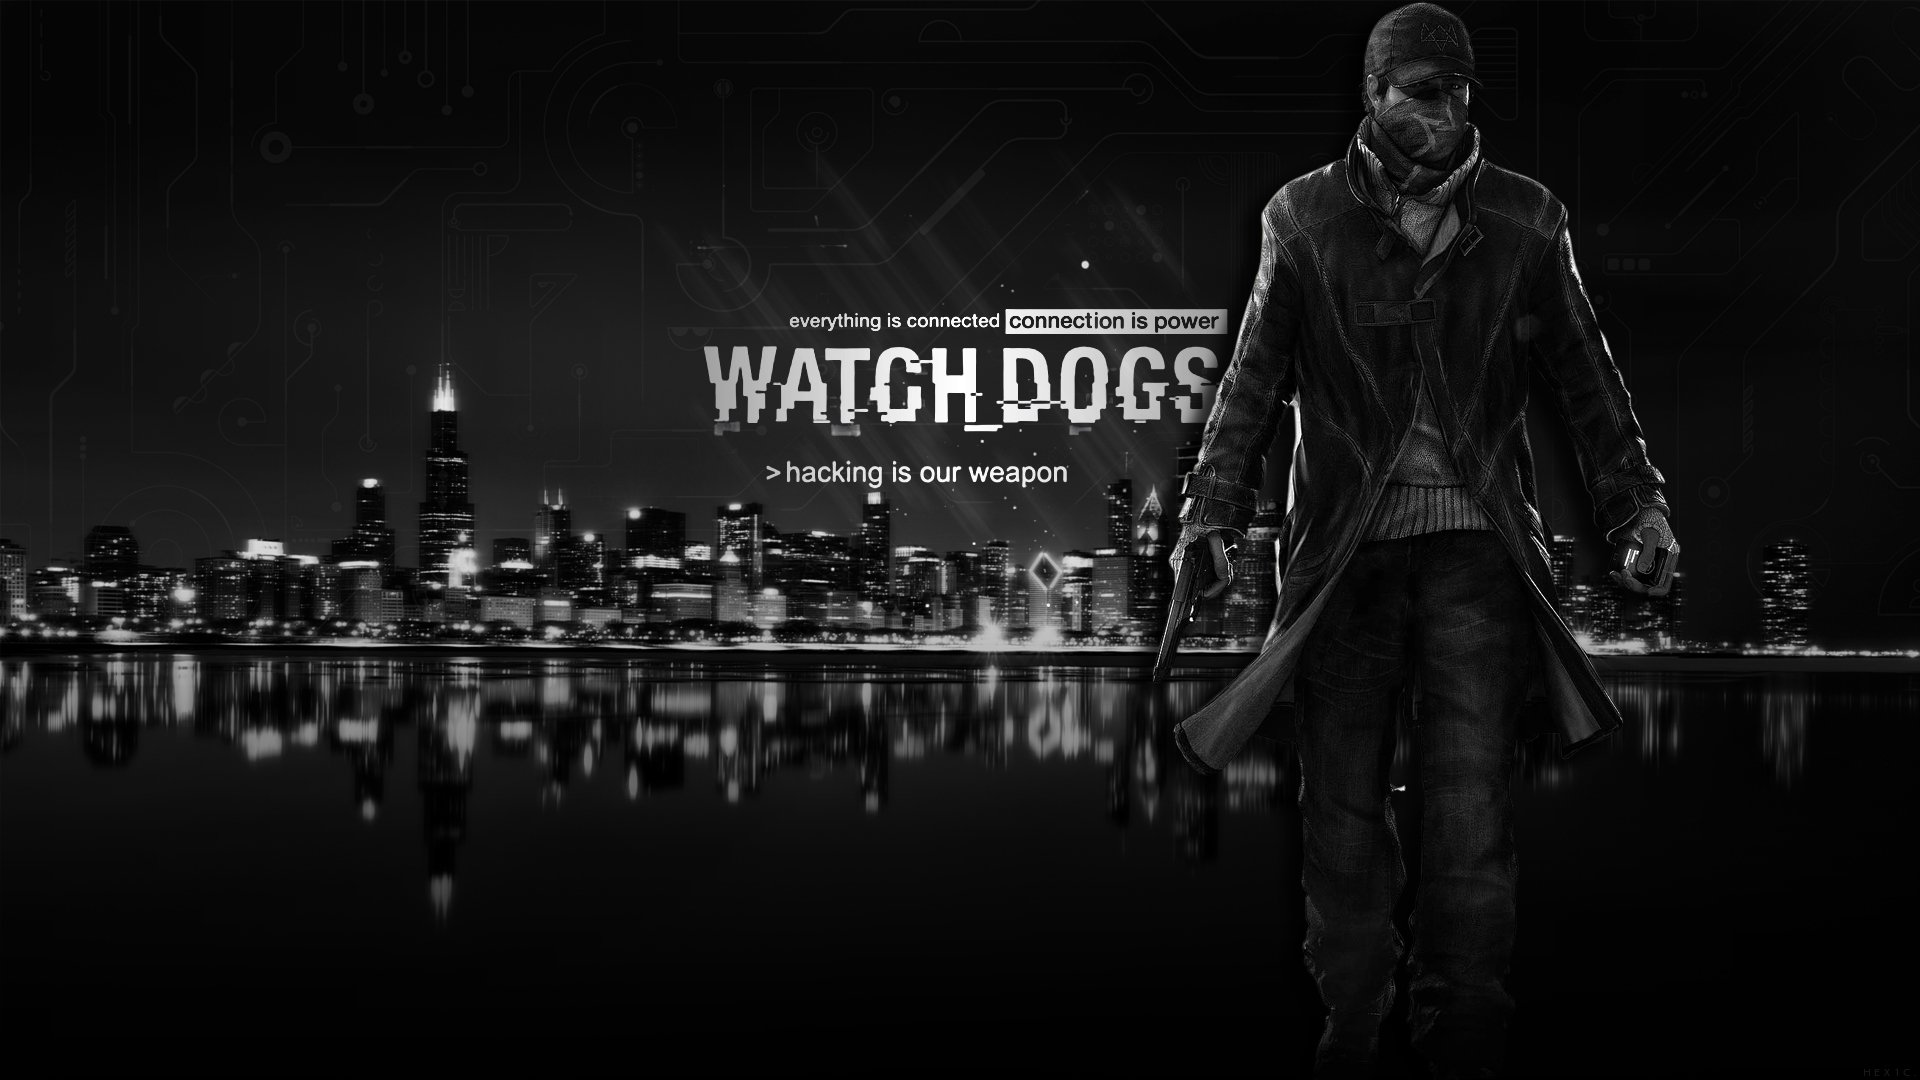 Watch Dogs Wallpaper Hd By Solidcell On Deviantart